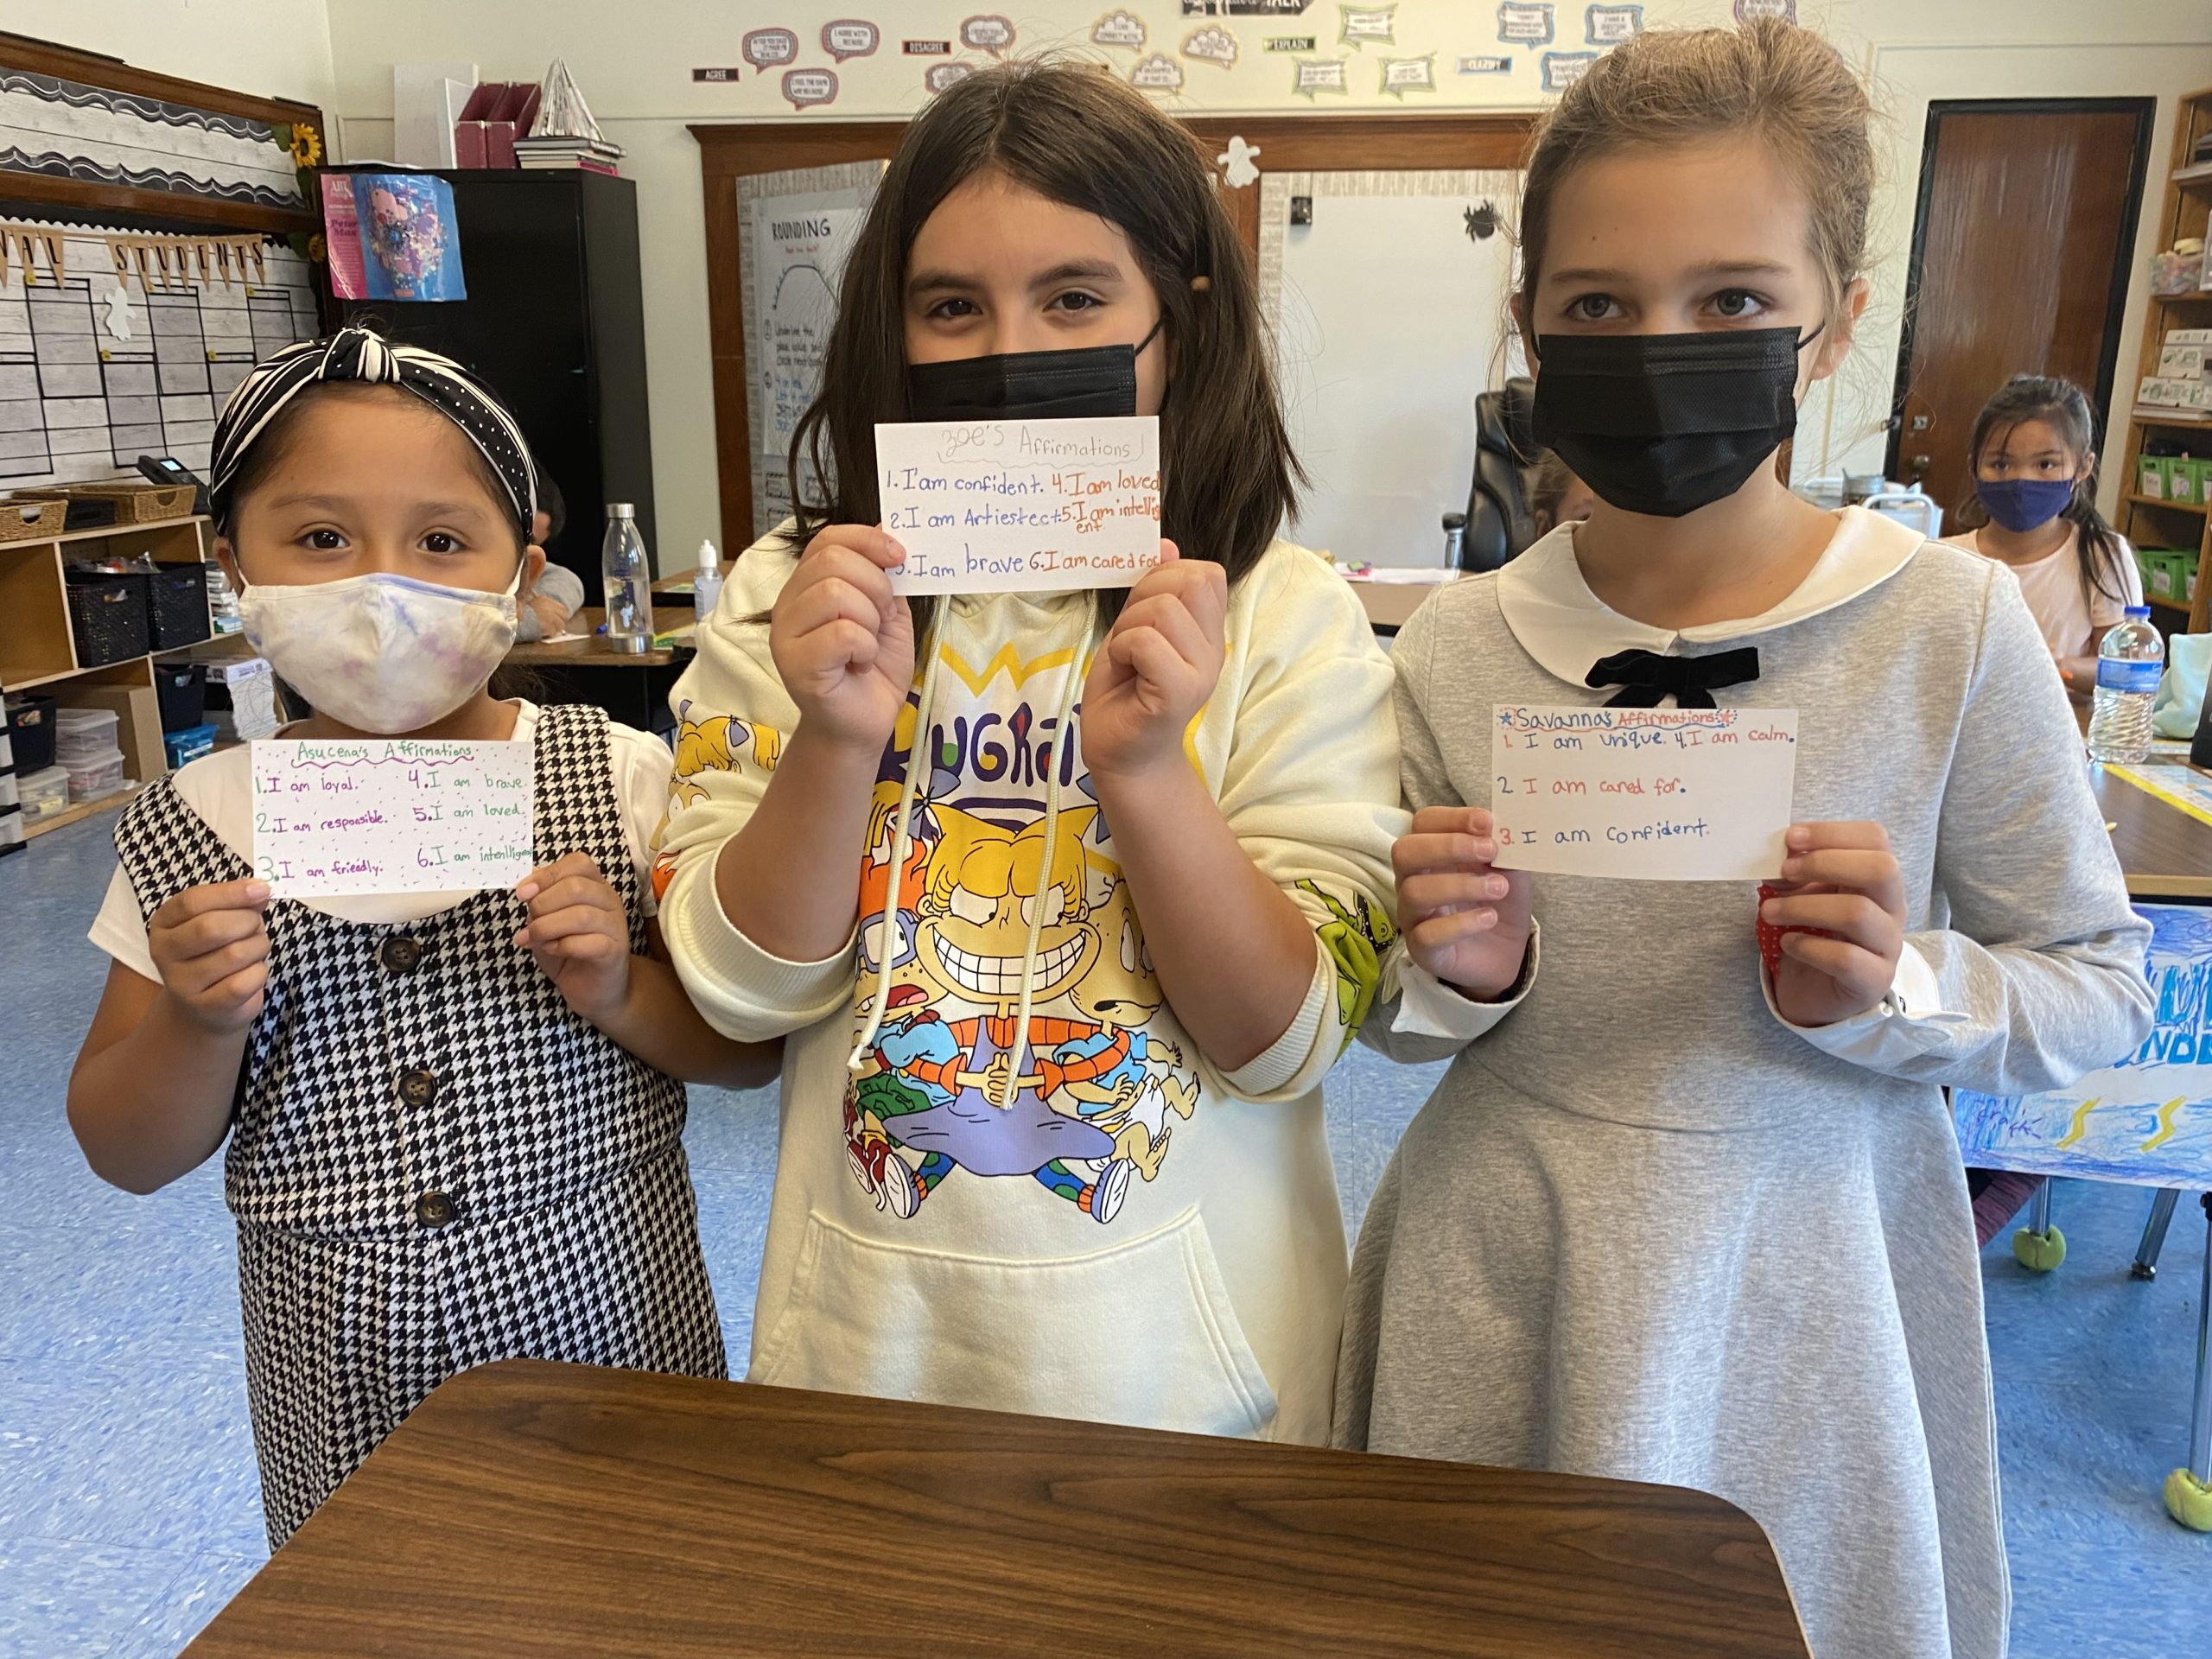 Bridgehampton School fourth-graders, left to right, Asucena Dominguez-Ramos, Zoe Urgiles and Savanna Lillie, with their positive affirmation cards.